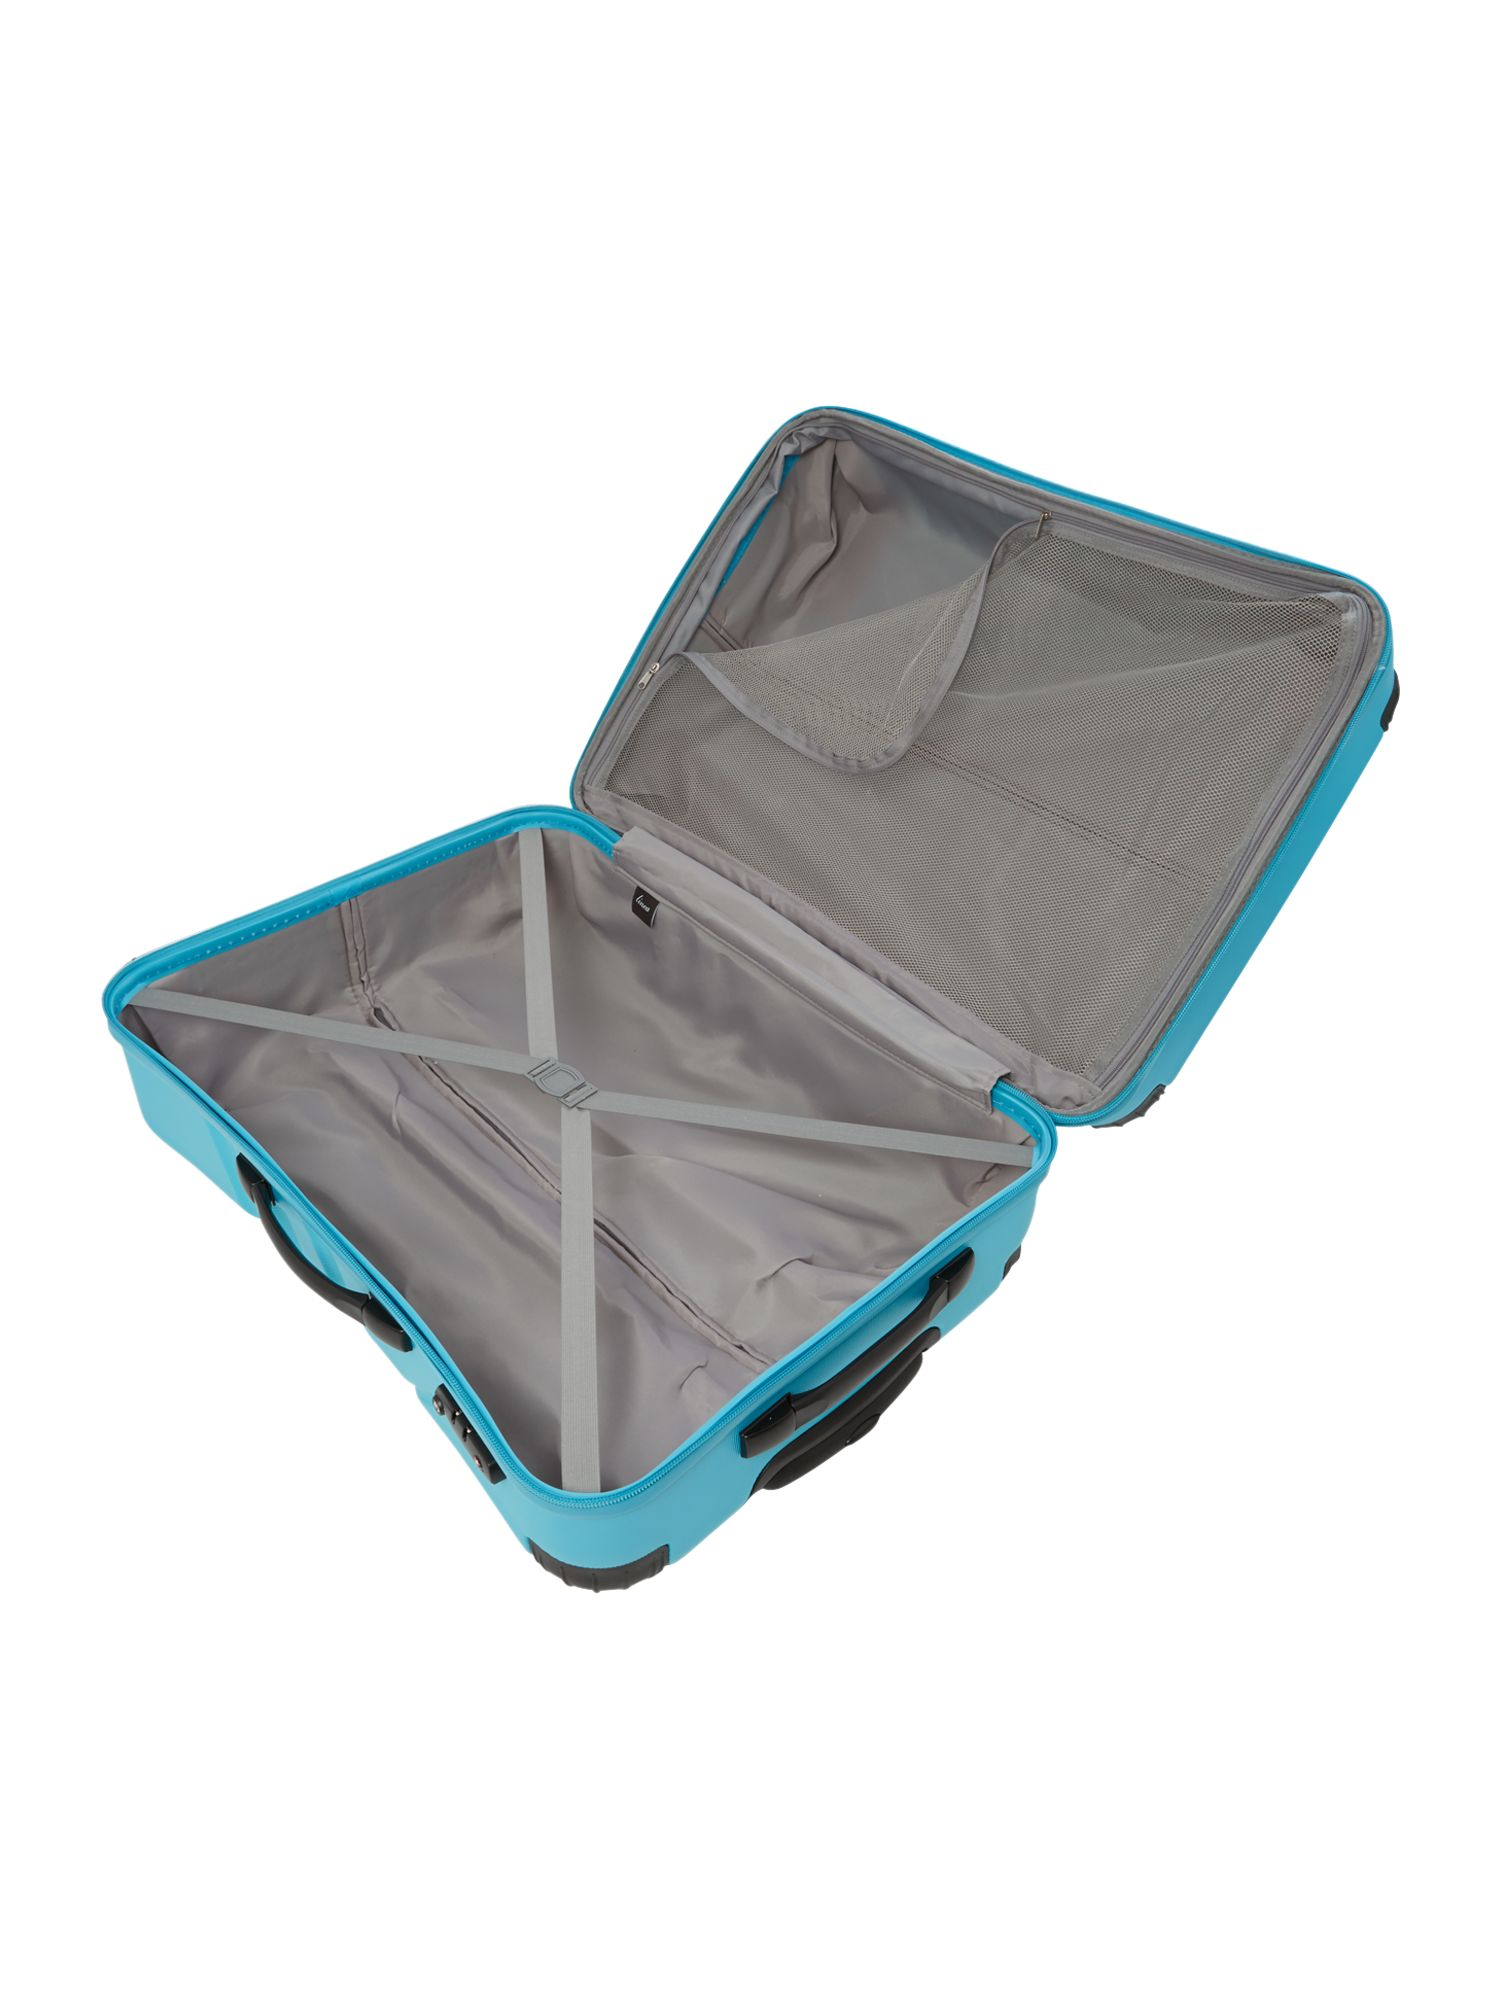 Shell aqua 4 wheel hard large suitcase